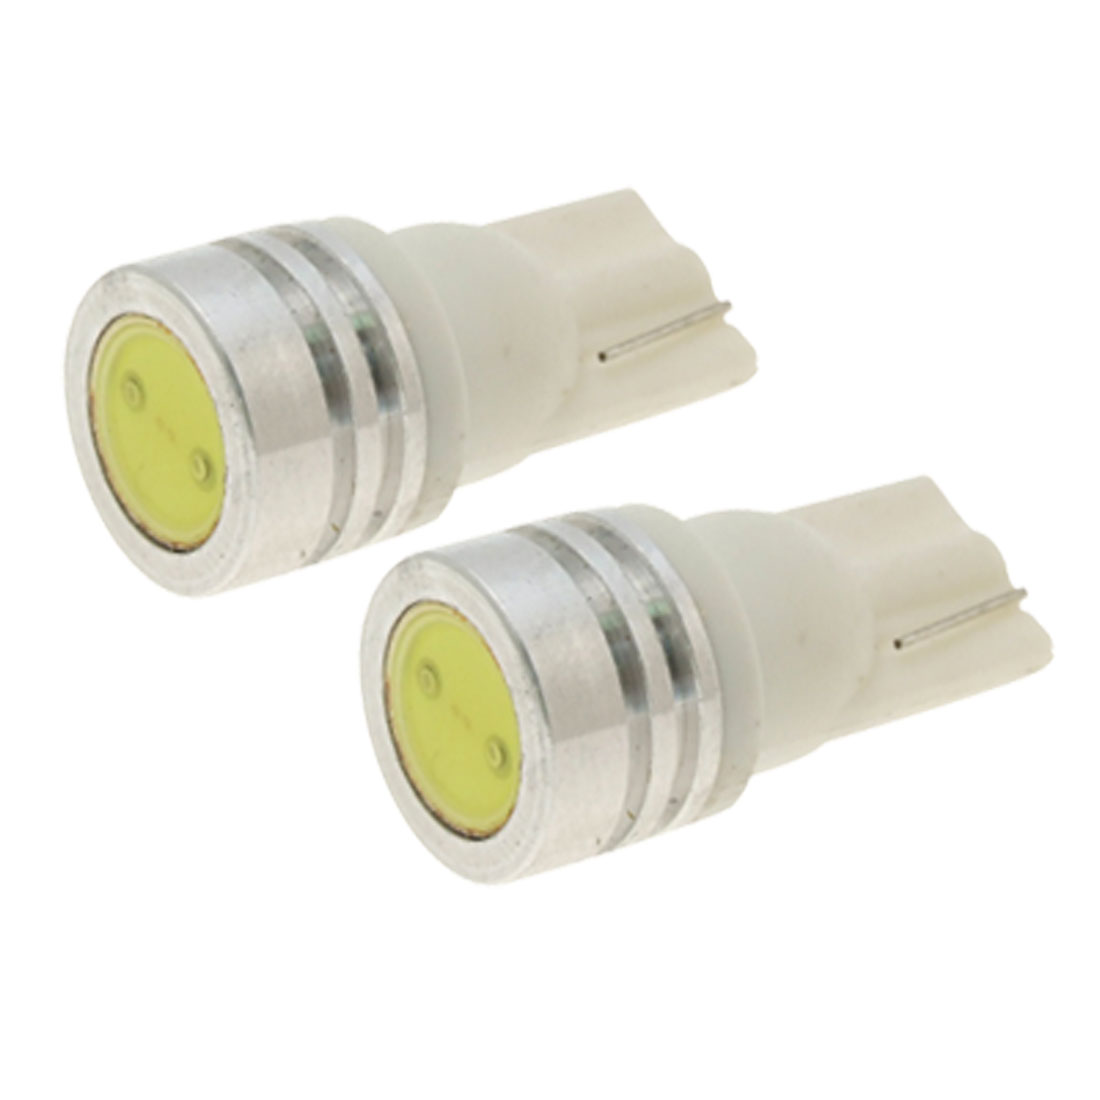 2 Pcs 0.5W LED White Dashboard T10 Side Light Bulbs for W5W 194